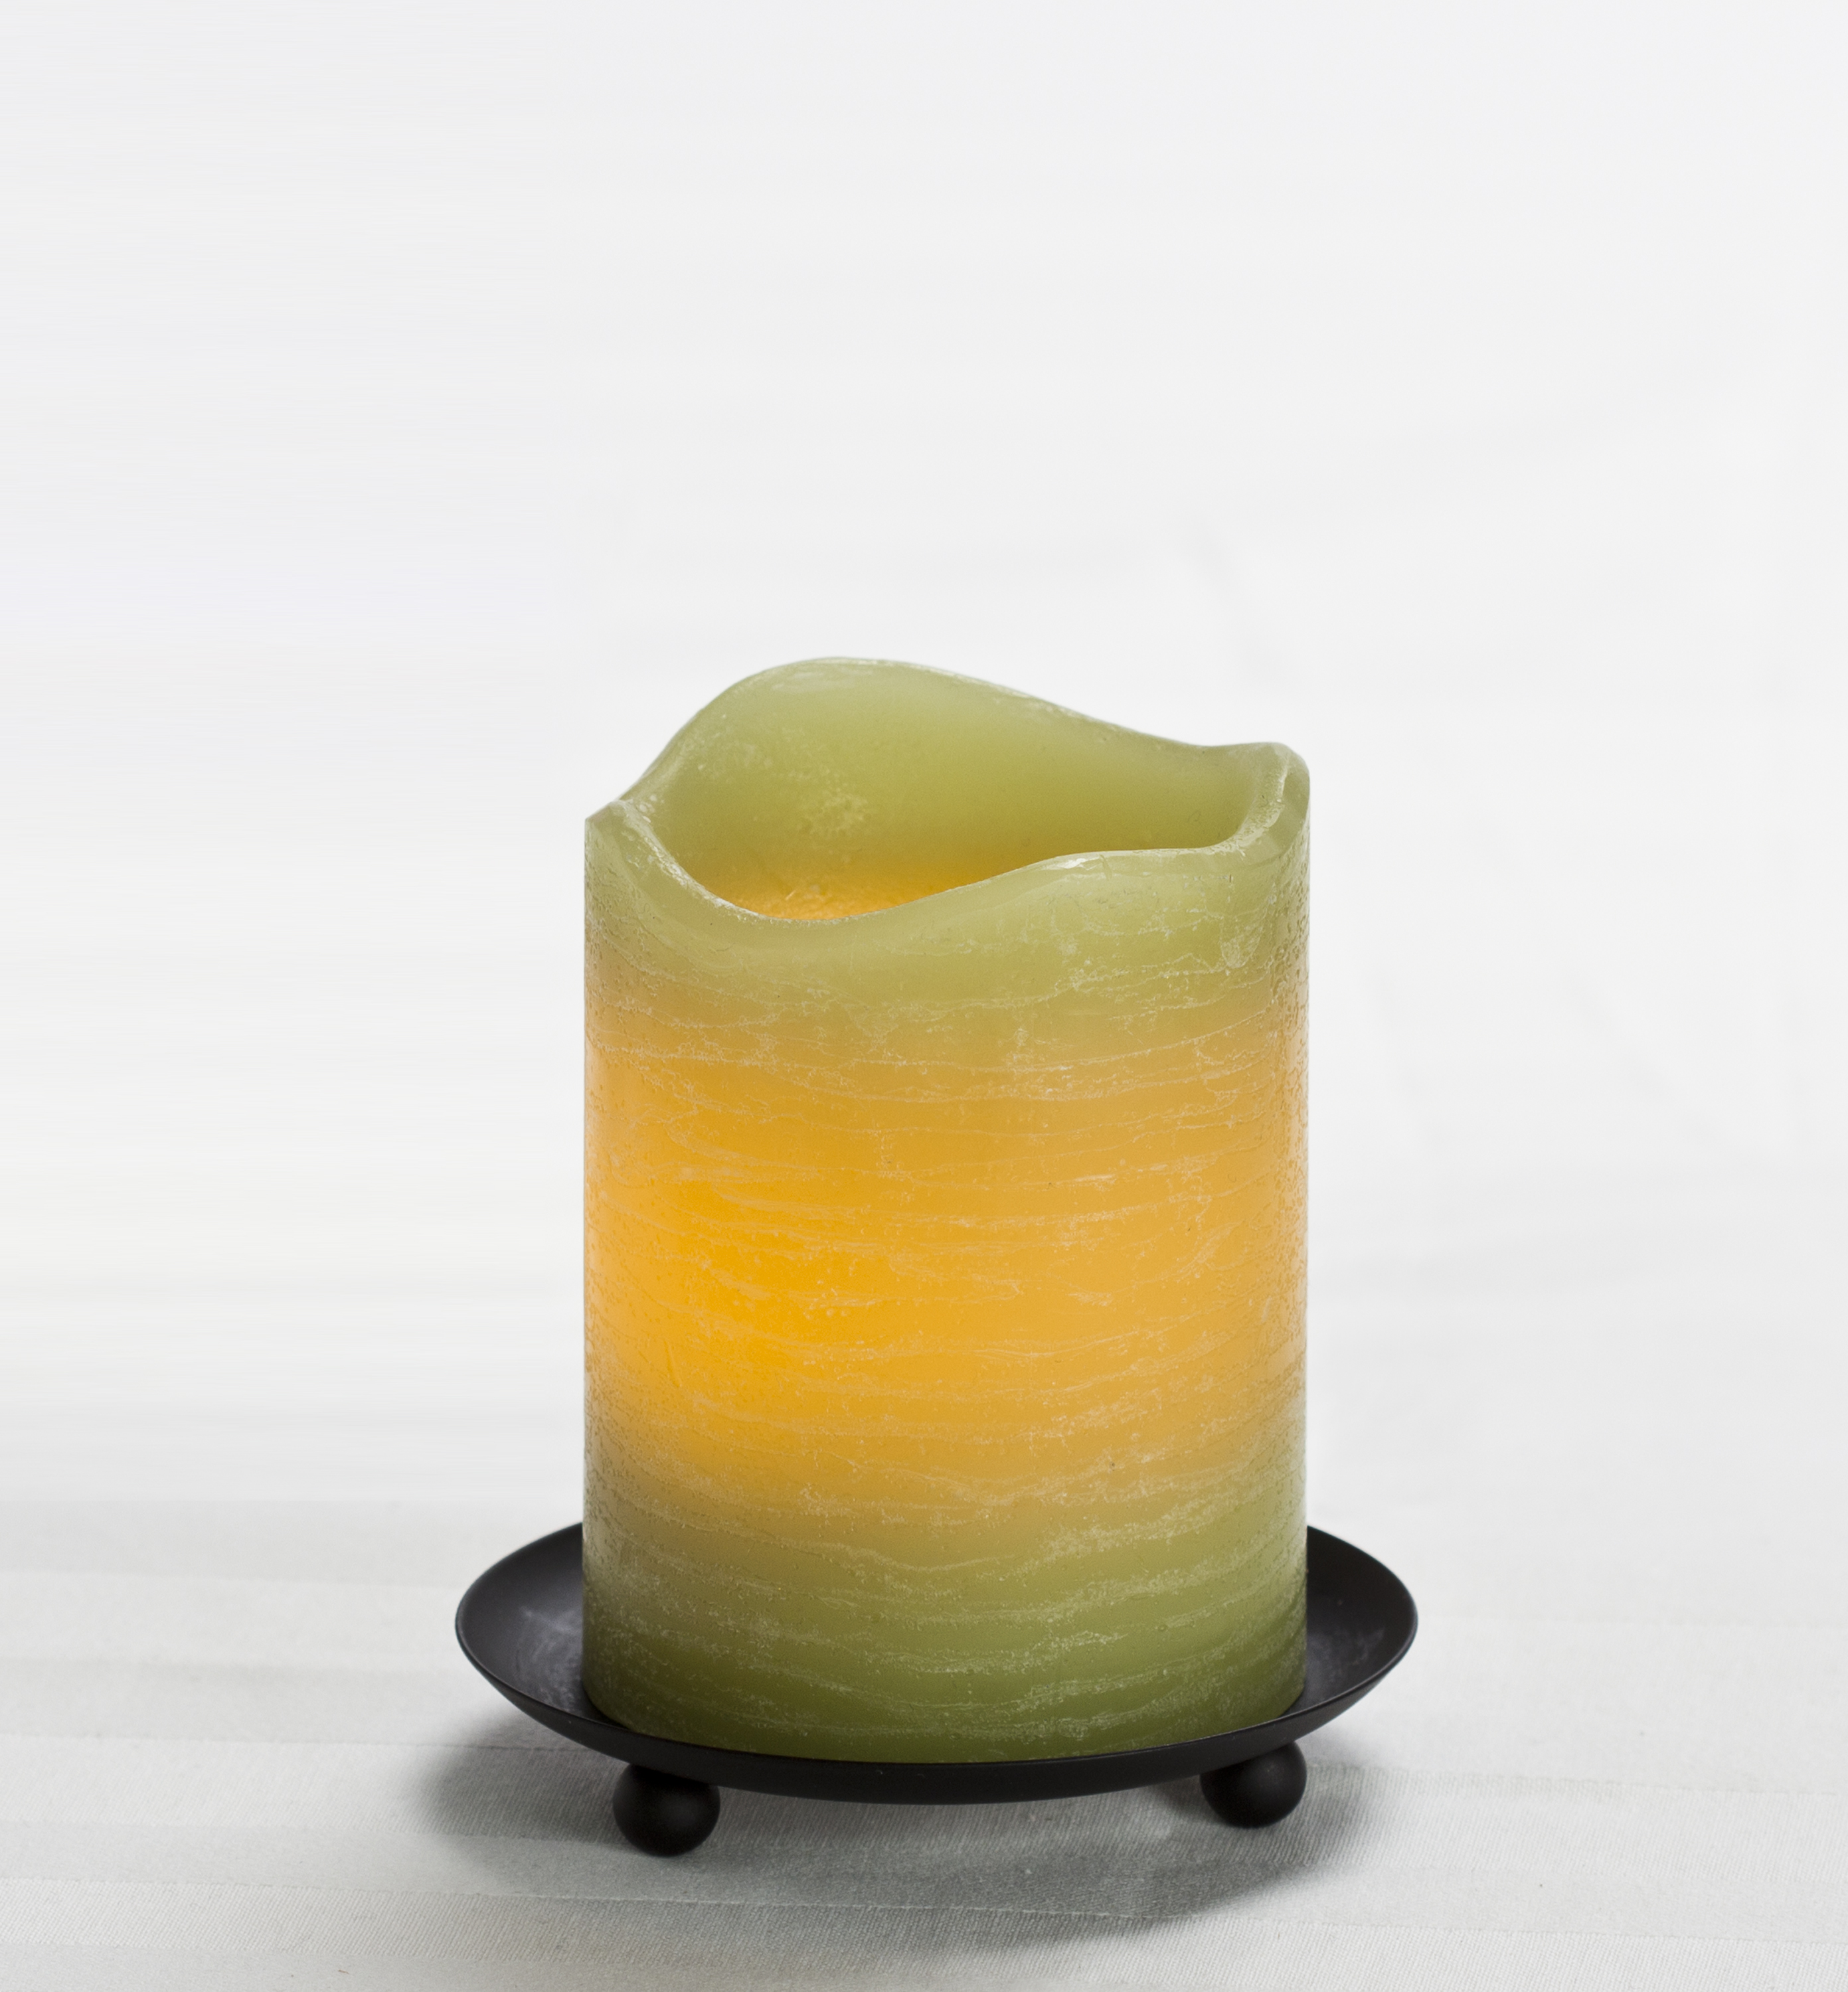 4 Inch Flameless Rustic Pillar Candle with Programmable Timer - Green with Citrus Sage Scent